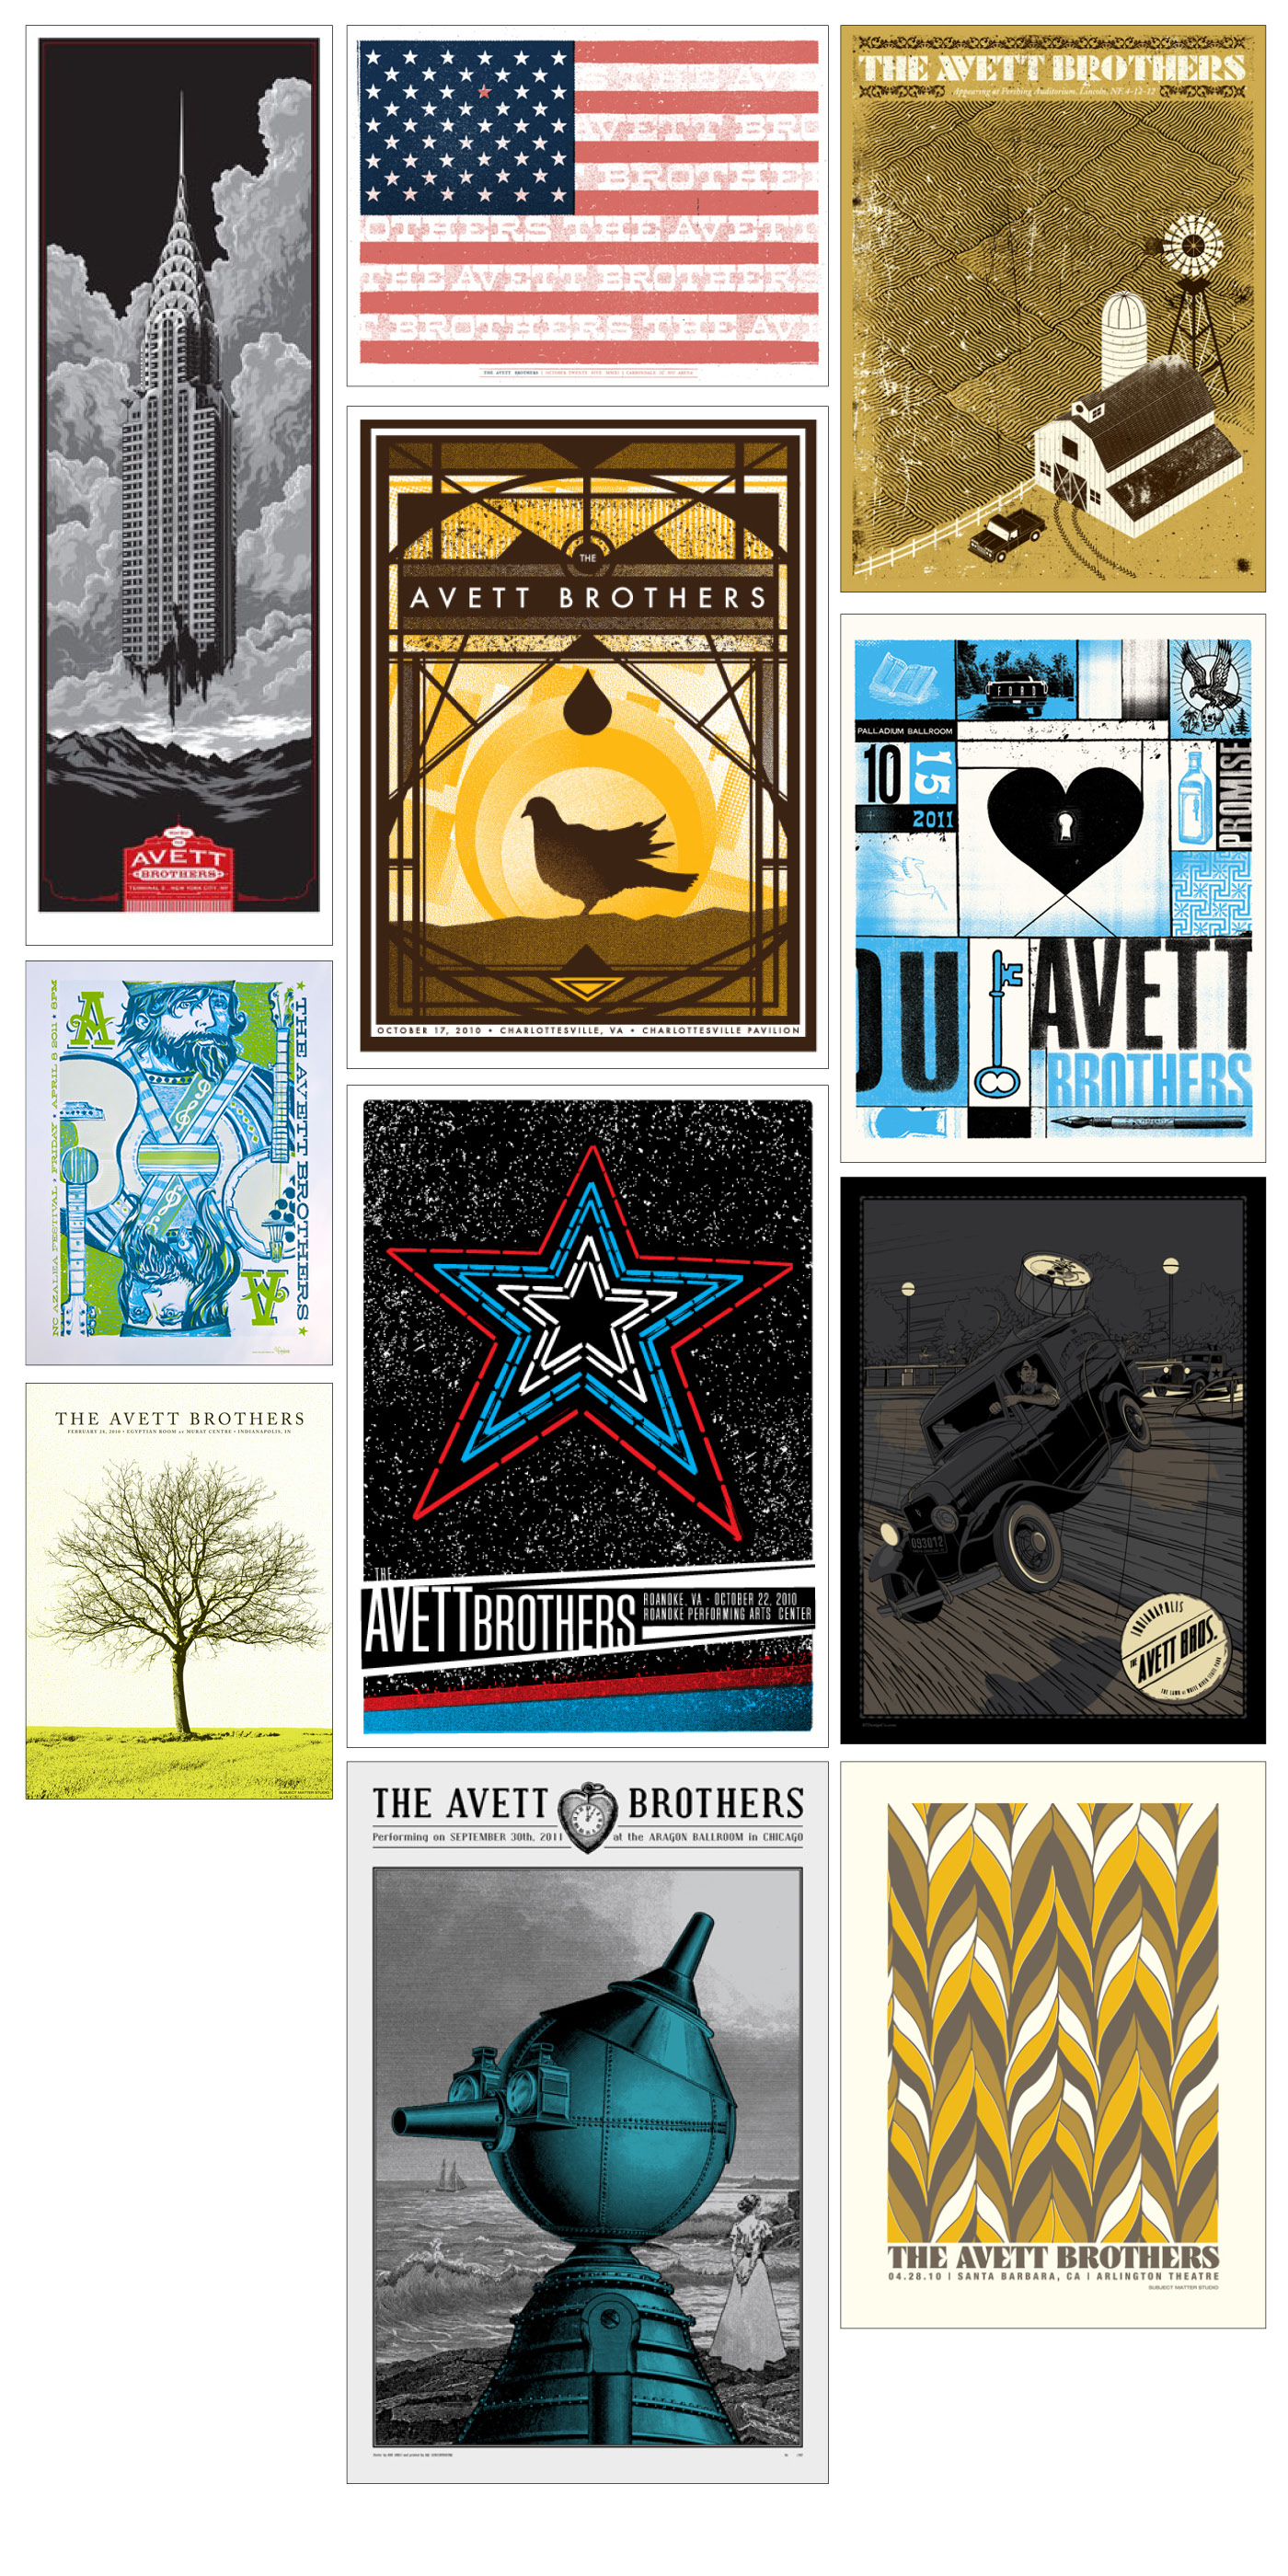 UPDATE 1: The Avett Brothers - 2013 Indianapolis Show - image 3 - student project